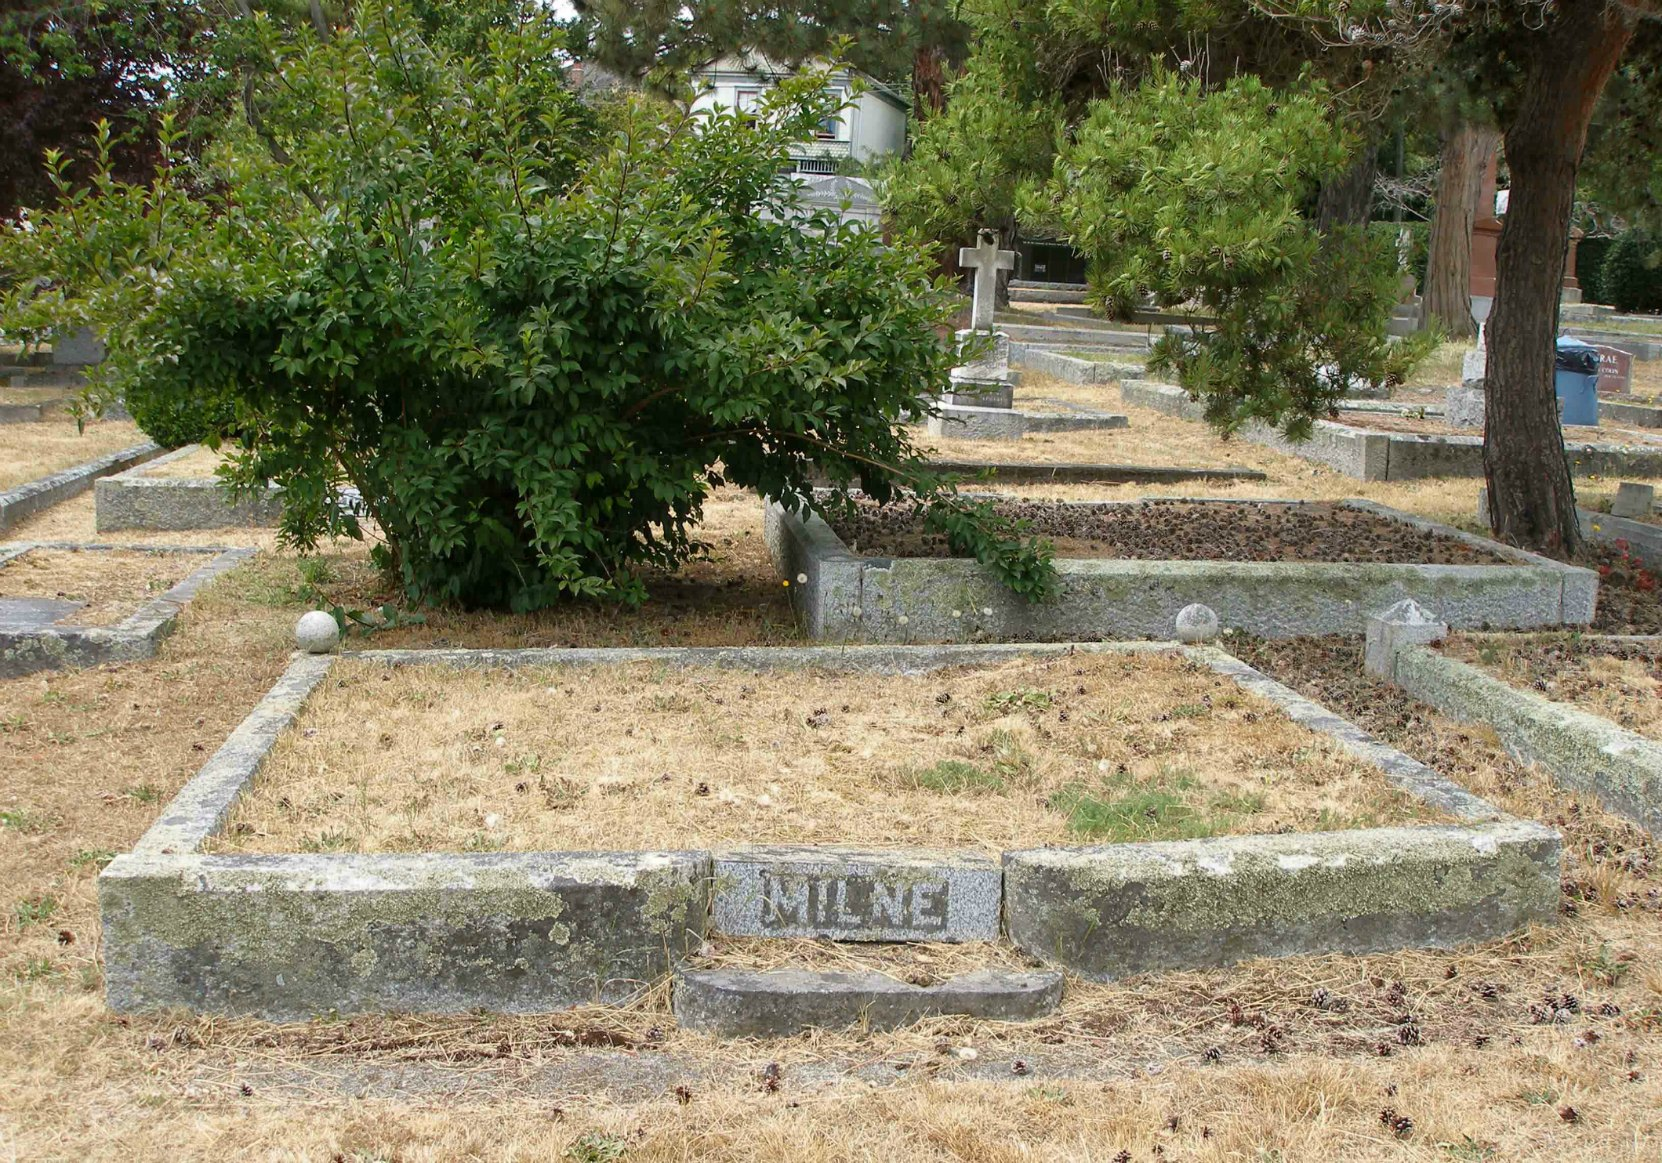 Alexander Roland Milne (died 1904, aged 65), grave in Ross Bay Cemetery, Victoria, B.C.